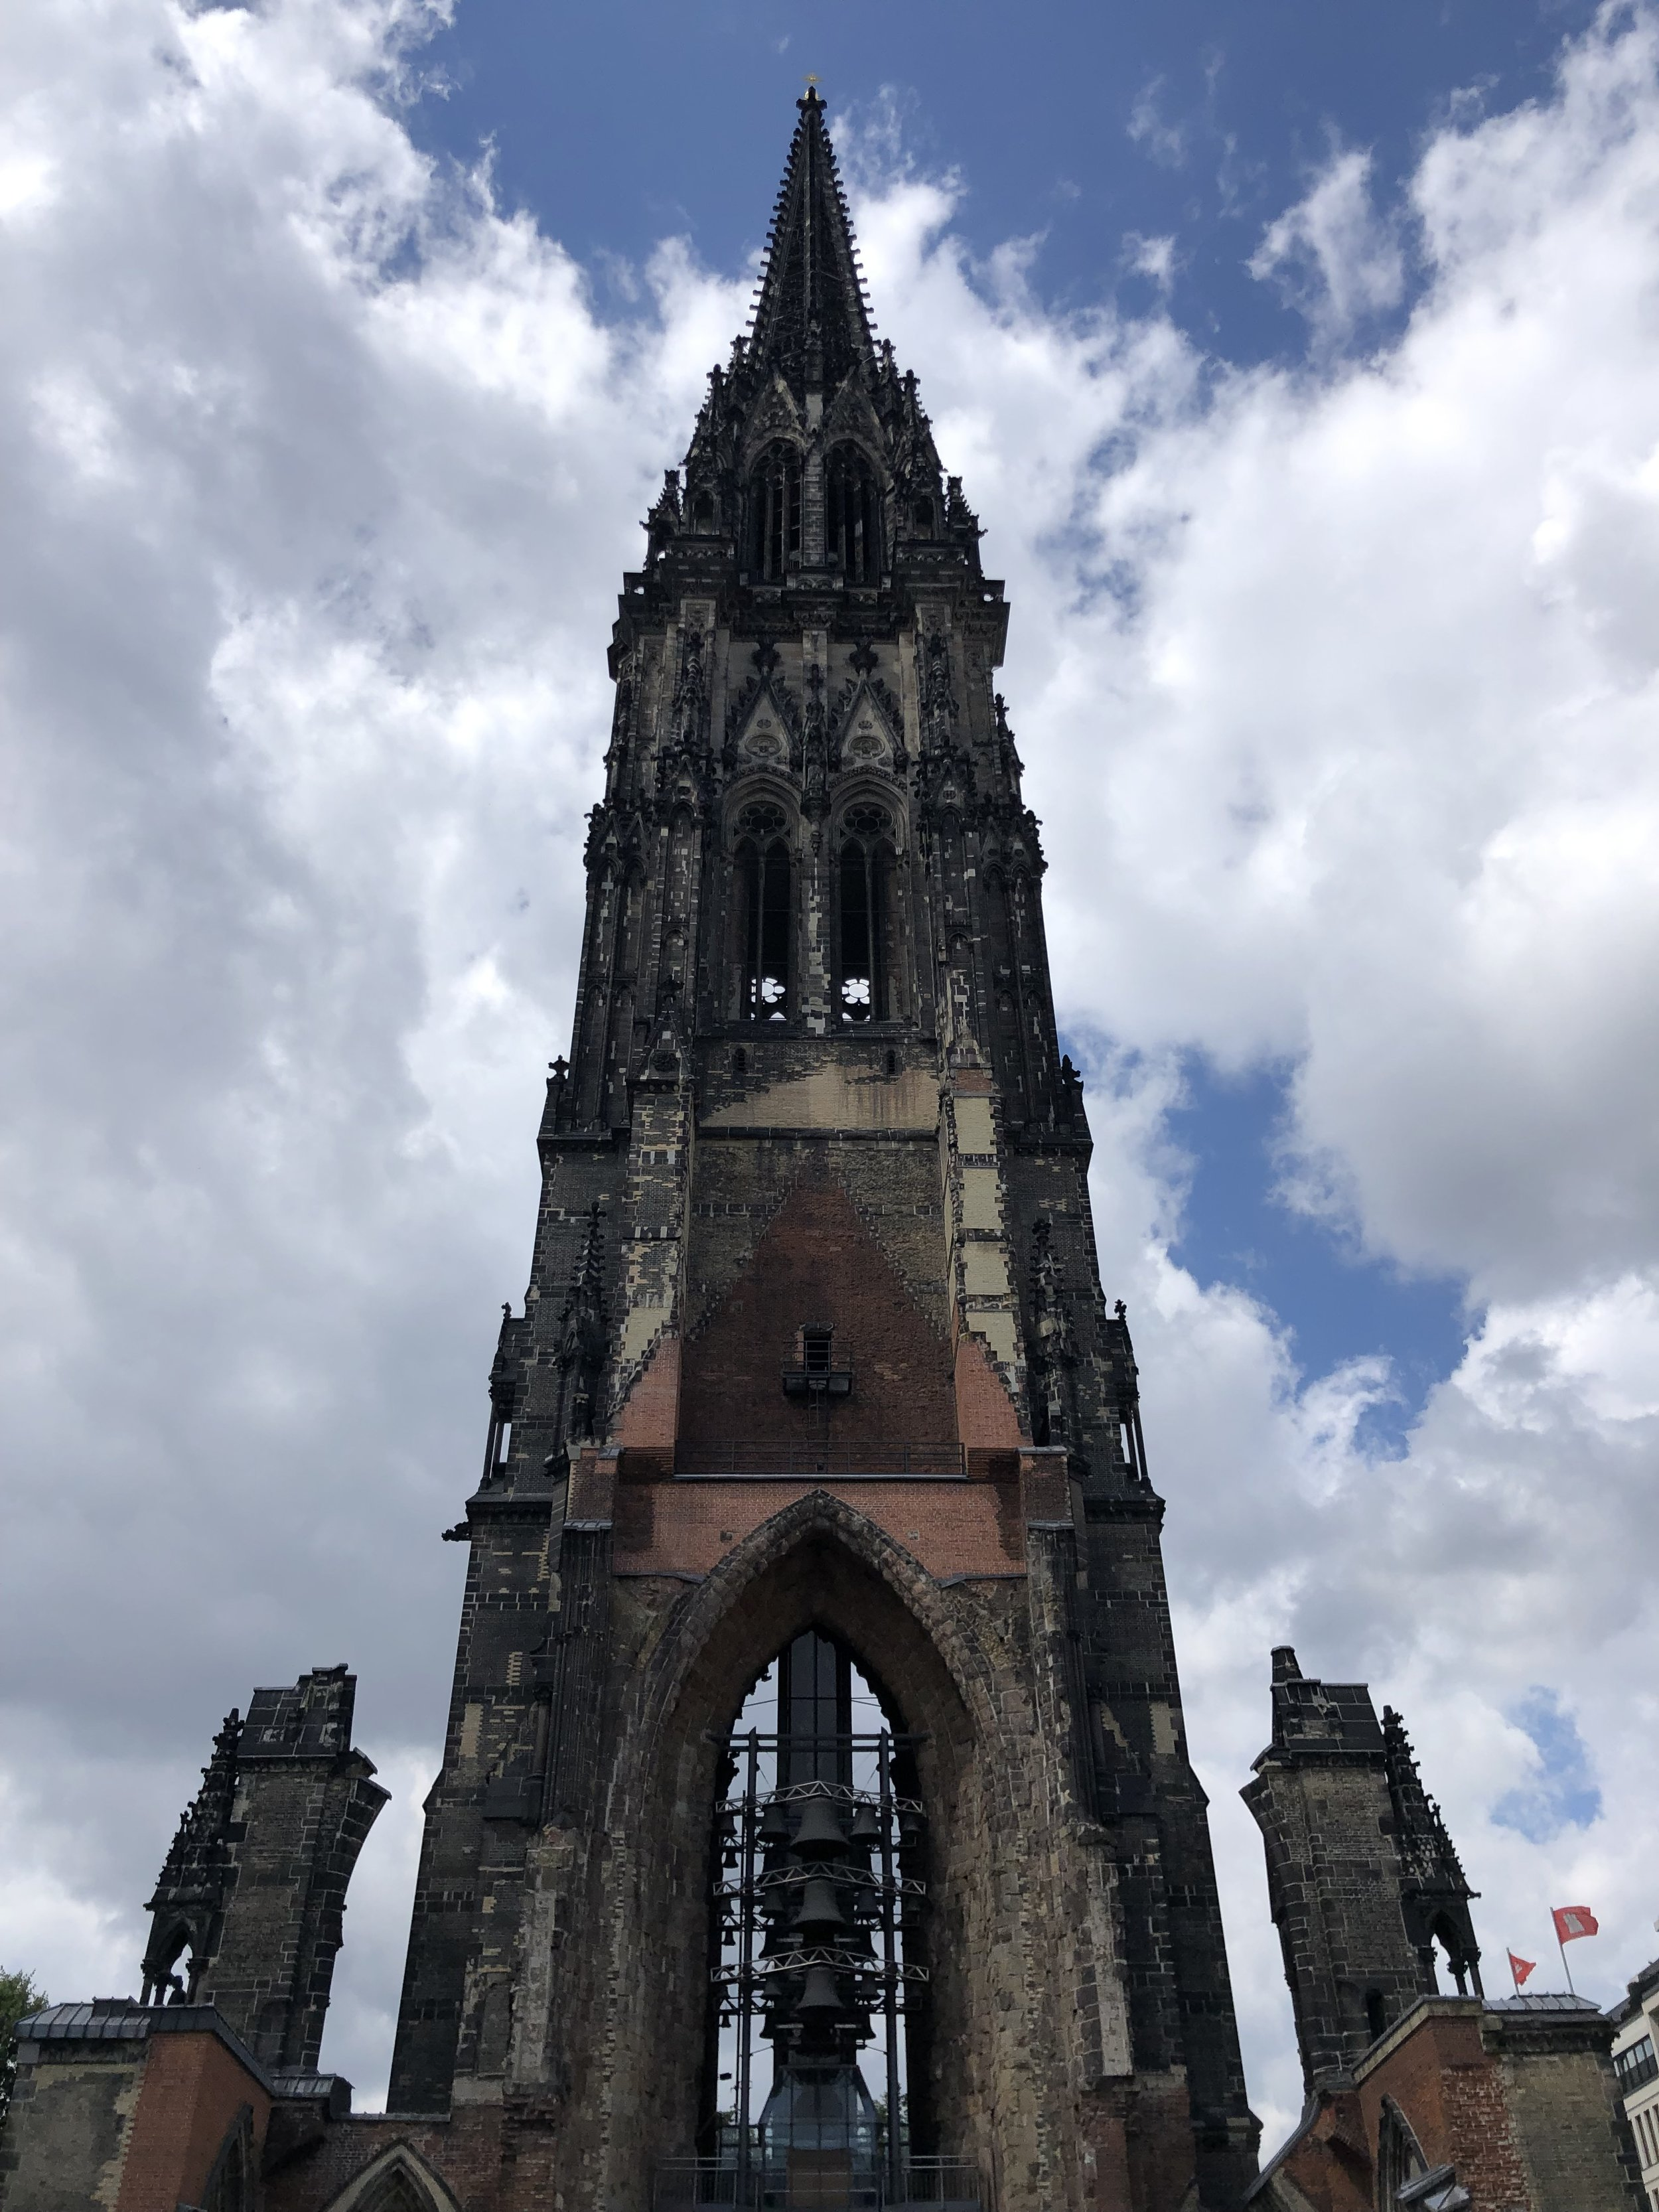 Near the Warehouse District is this shell of a bombed out church, which was the first significant memorial to the war years we visited. Hamburg was one of several German cities that were largely destroyed by fire or bombing.